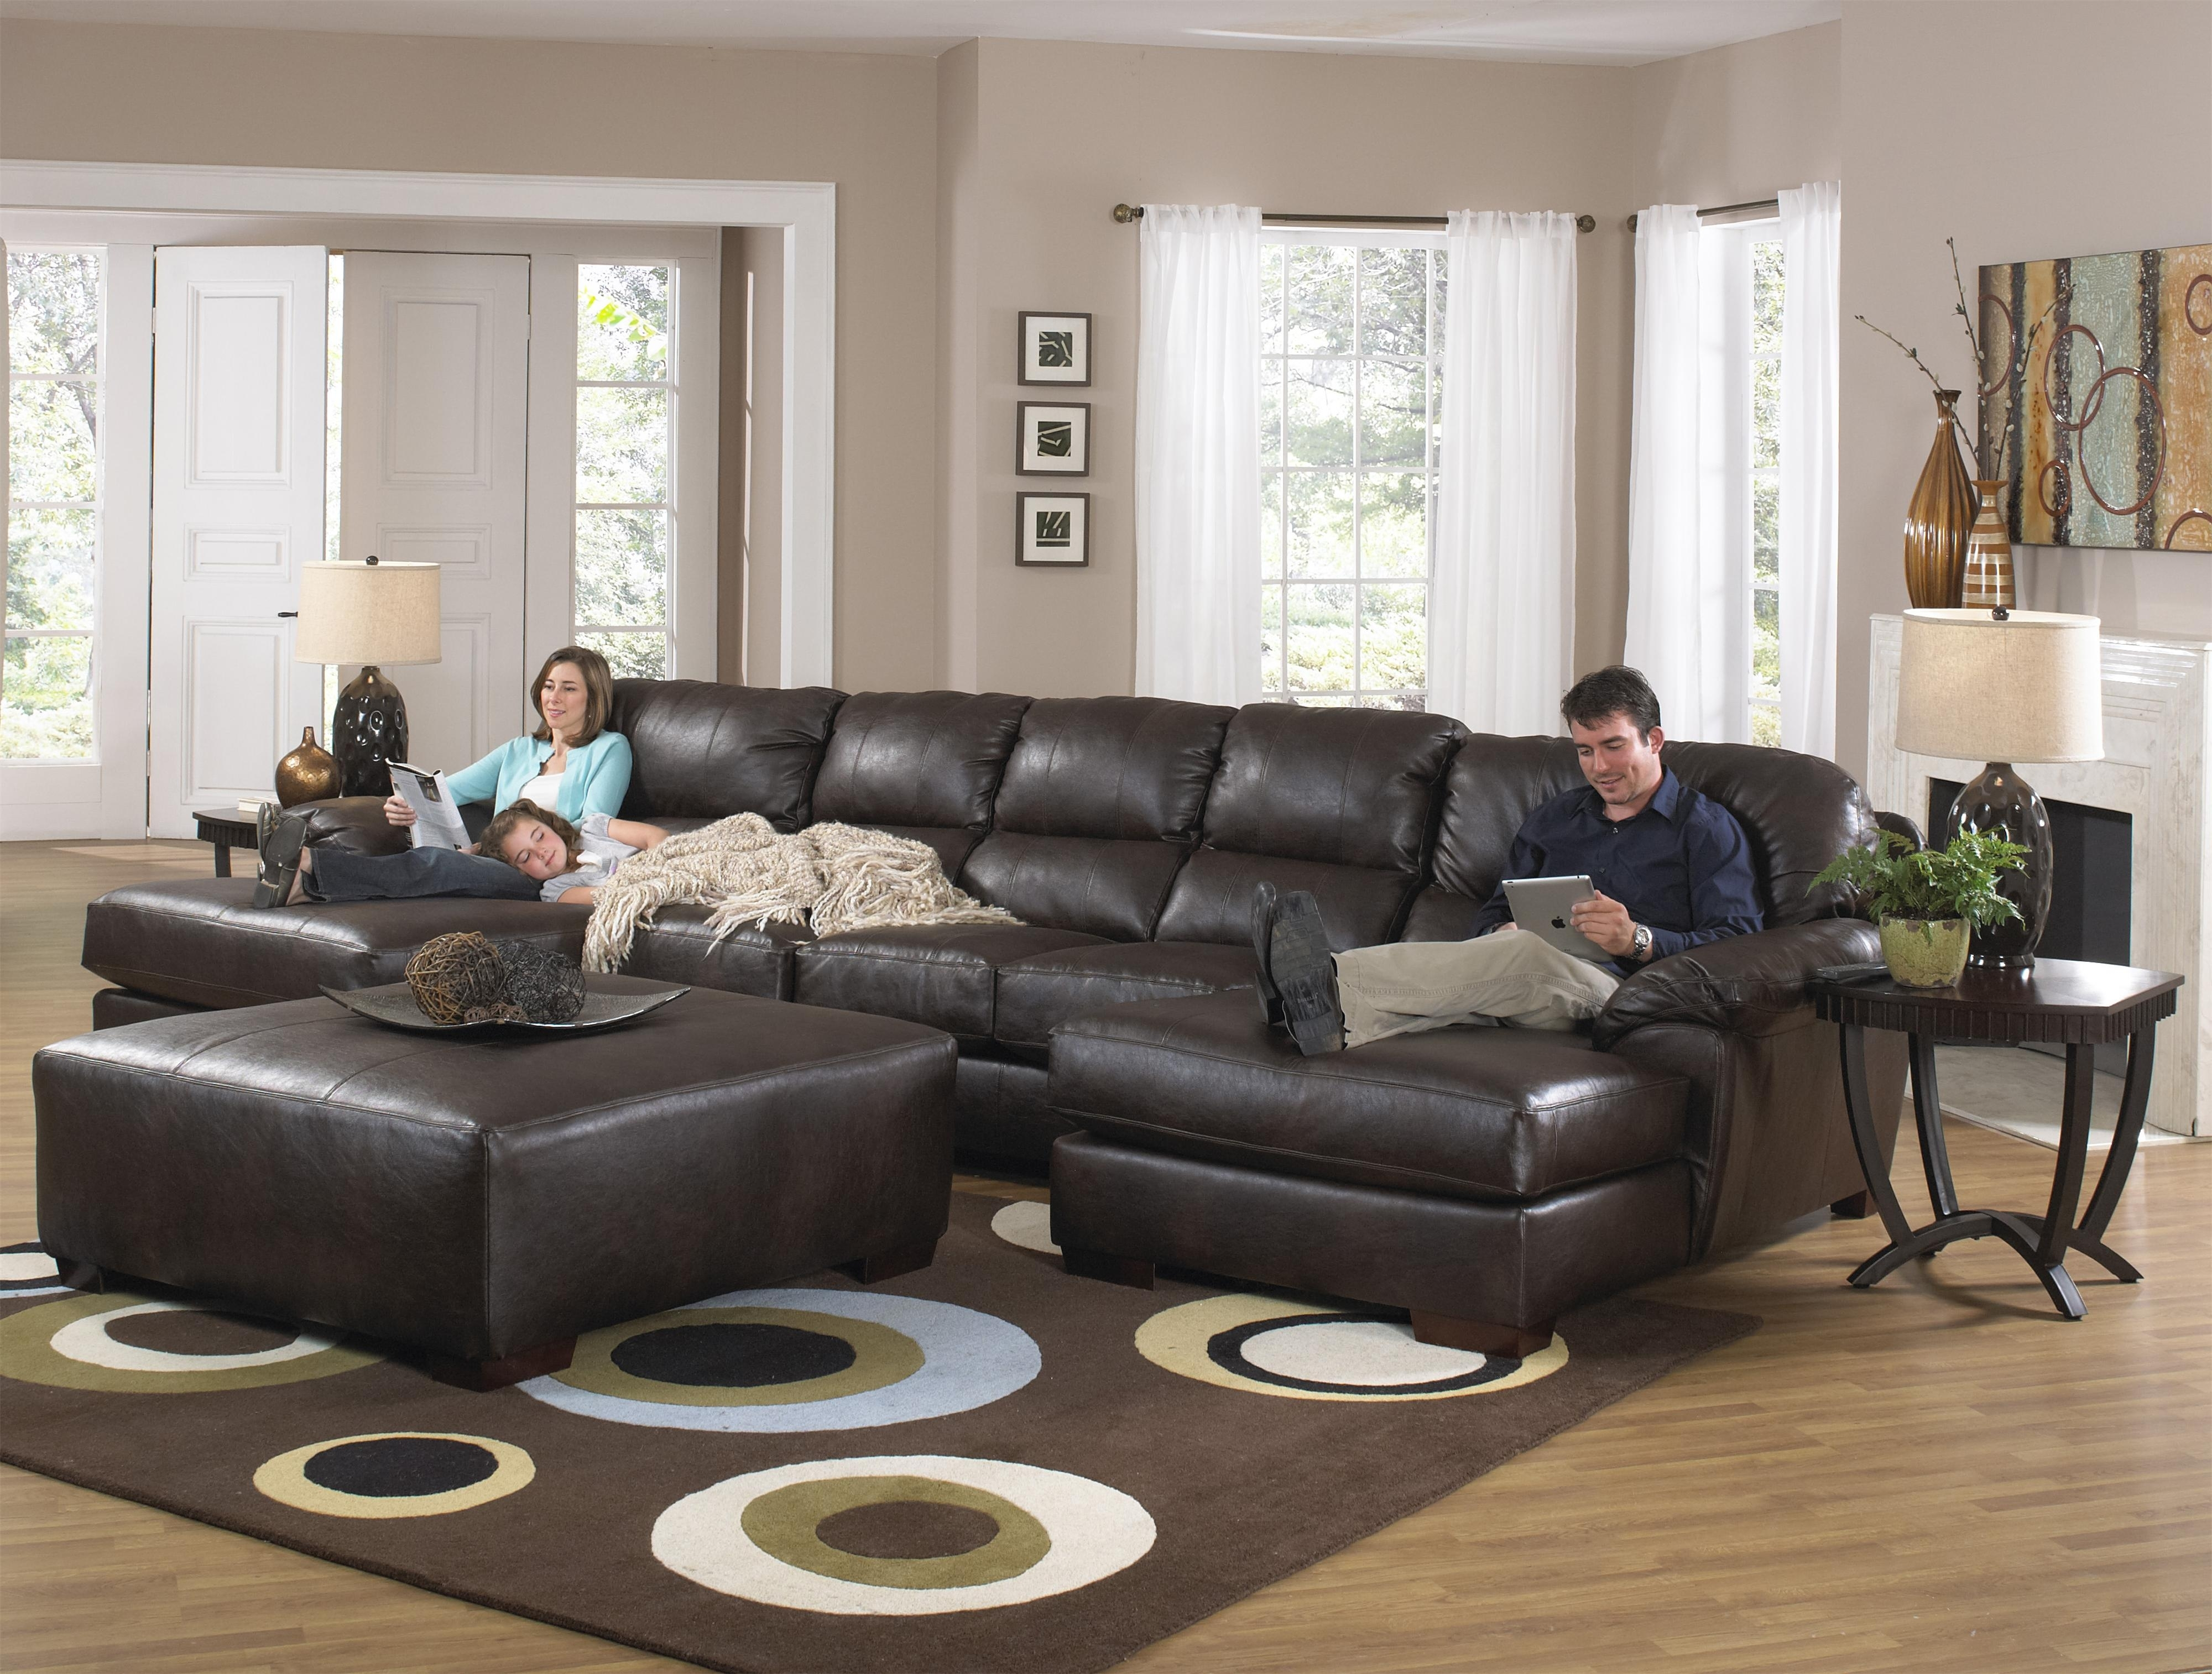 Two Chaise Sectional Sofa With Five Total Seatsjackson Furniture Within Long Sectional Sofas With Chaise (Image 10 of 10)